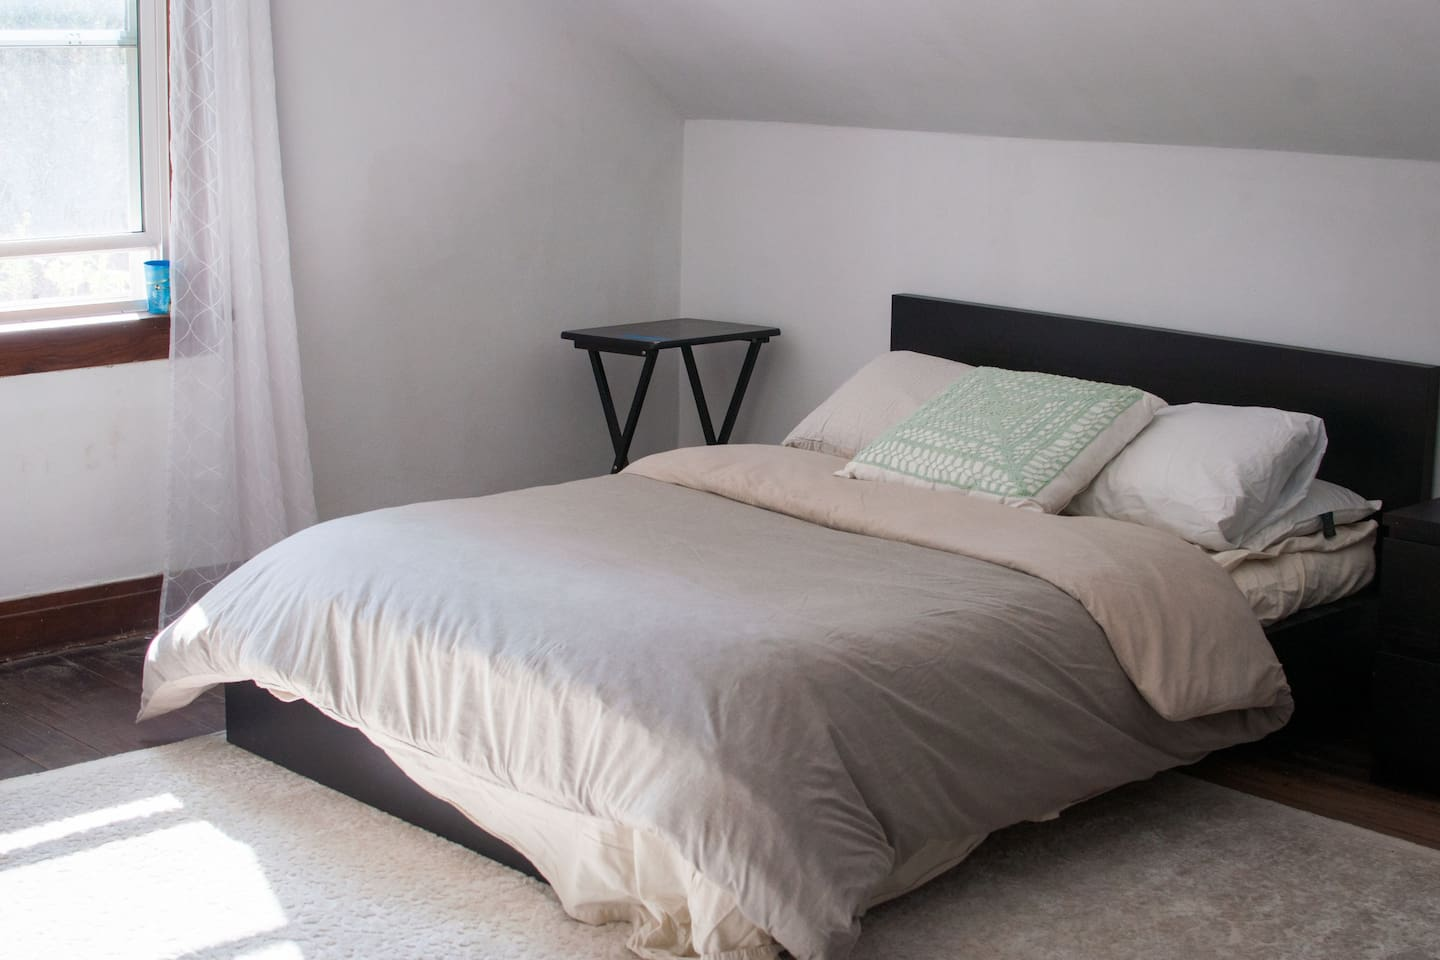 Full size bed in a private bedroom on the second floor.